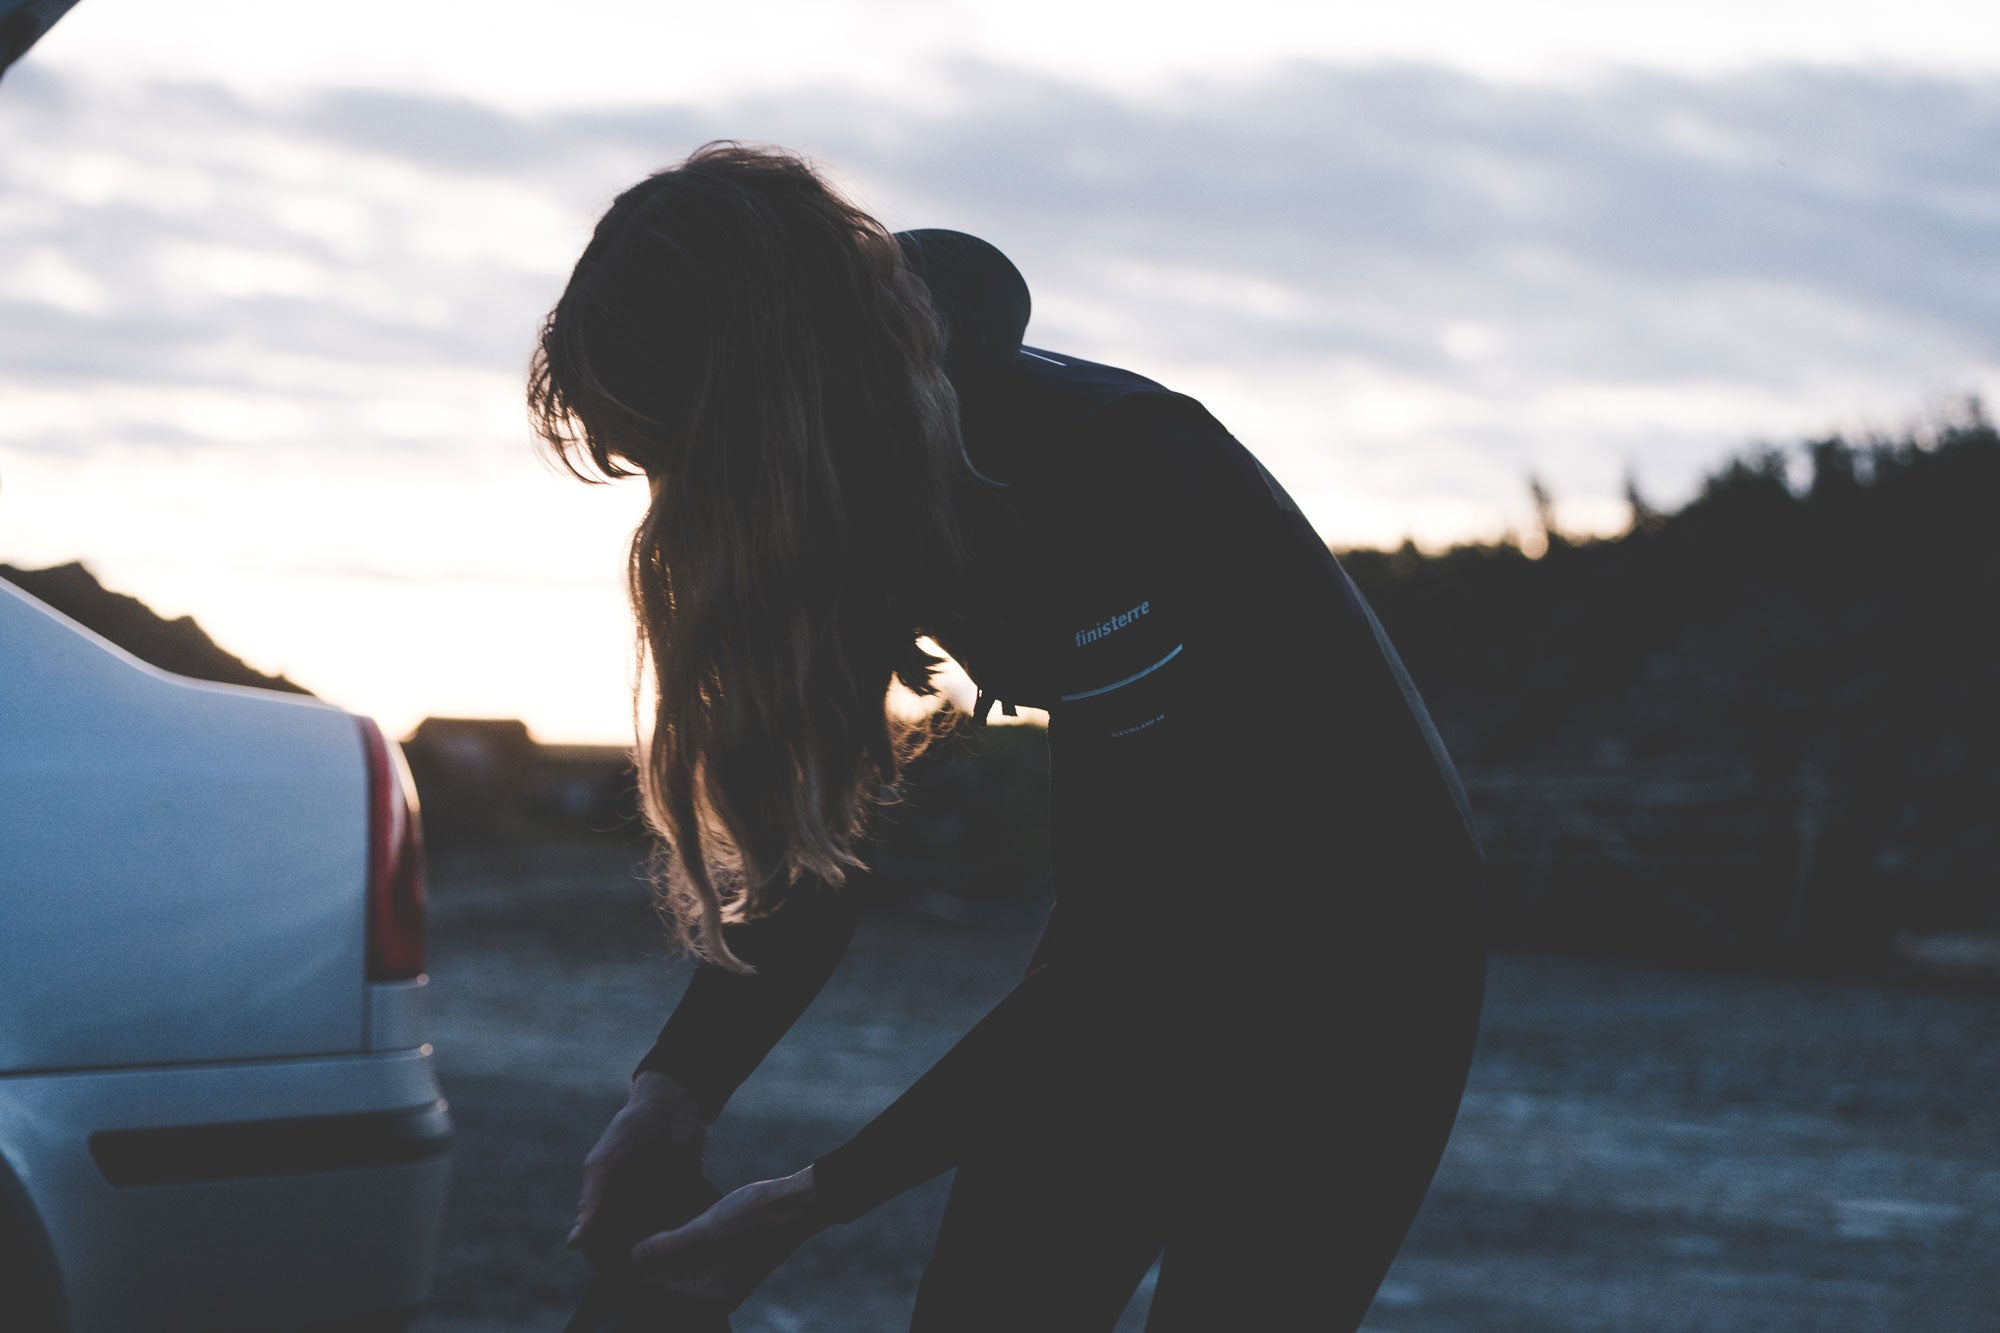 Sally McGee getting changed into her Finisterre wetsuit on a dark morning - Image Credit Tom Bing